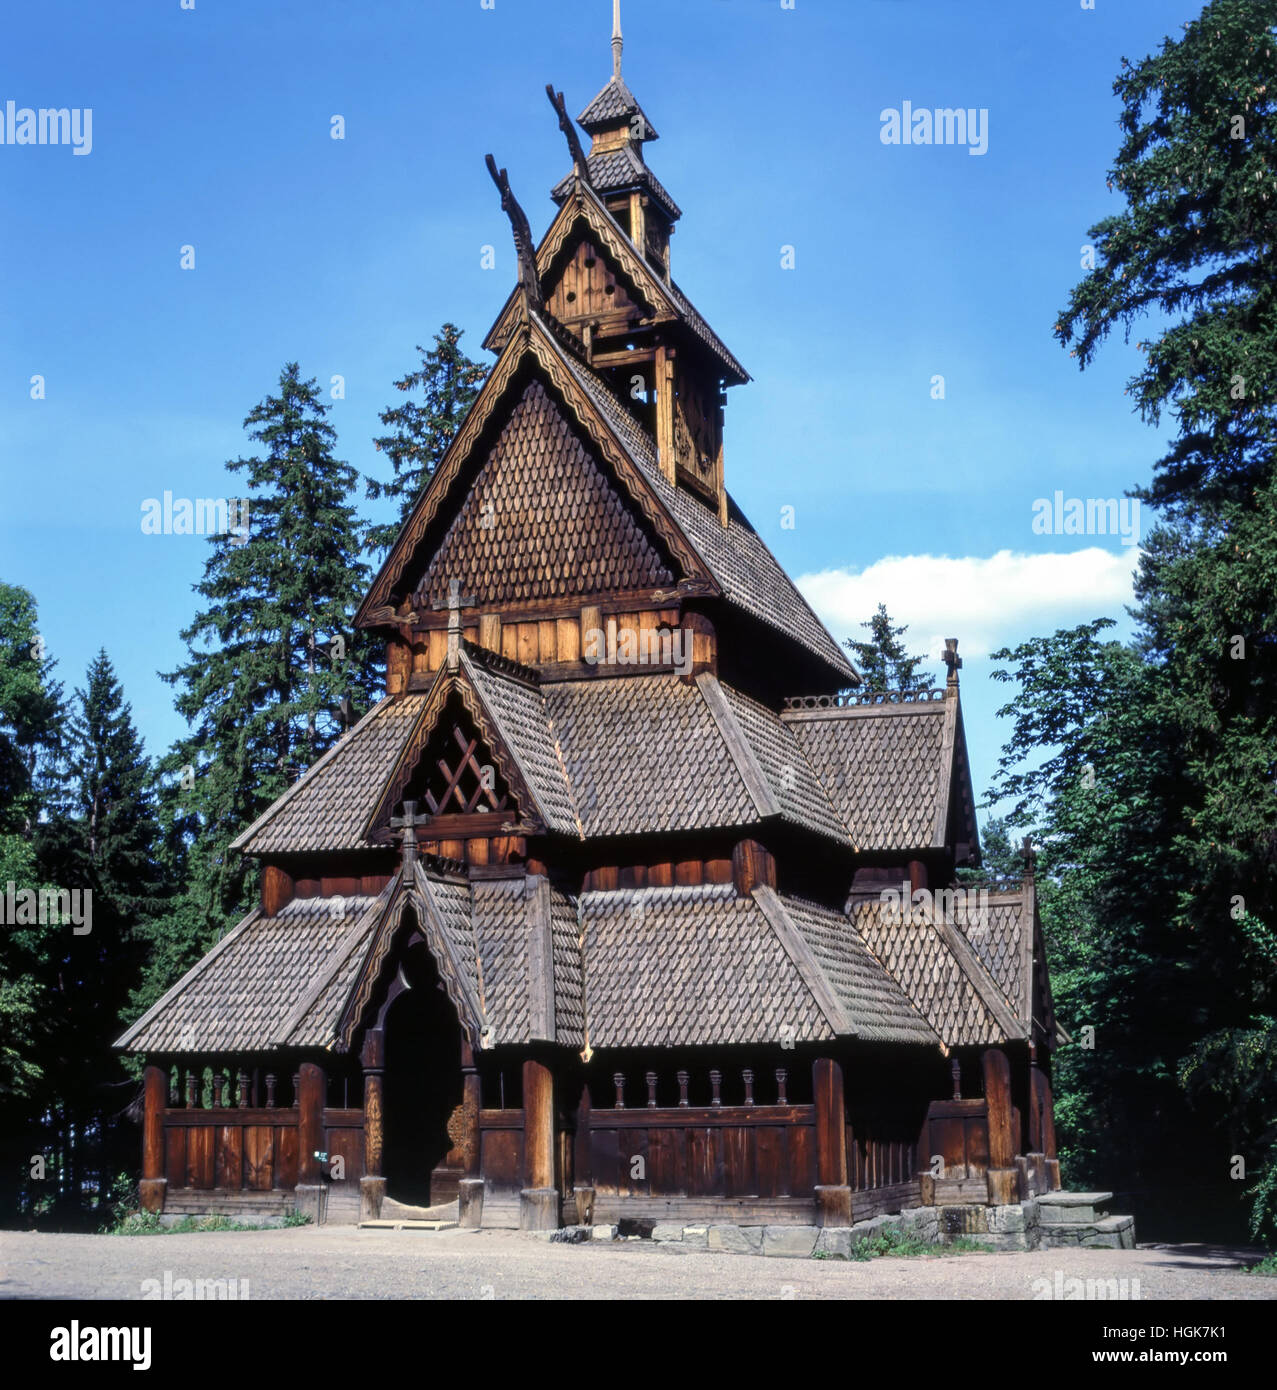 Medieval  Stave church in Norway - Stock Image